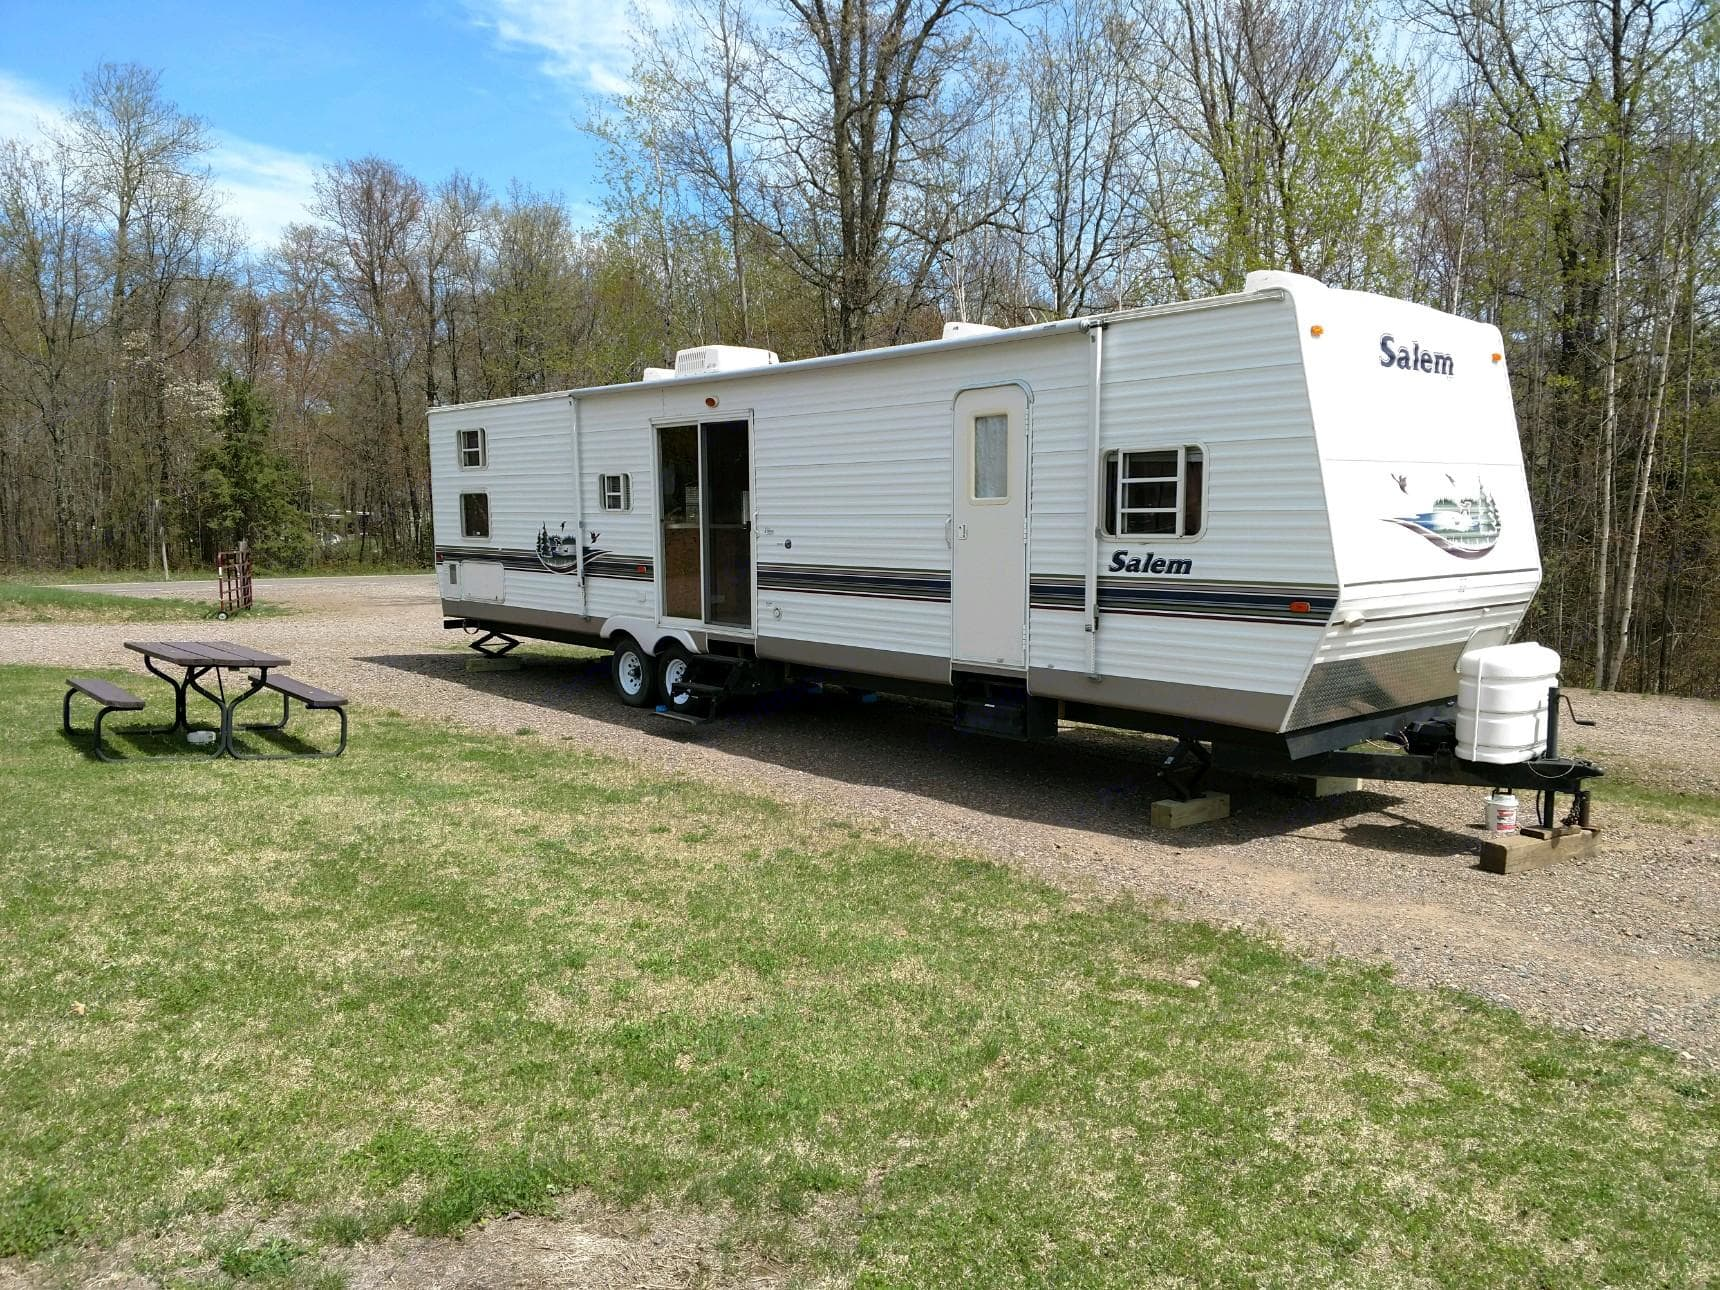 38 FOOT CAMPER WITH 2 HUGE SLIDE OUTS AT A CAMPGROUND, TURN KEY VACATION, NO DRIVING, JUST BRING YOUR OWN TOWELS FOR KITCHEN/BATH AND FOOD, AND BOAT!. Forest River 38bhds 2004